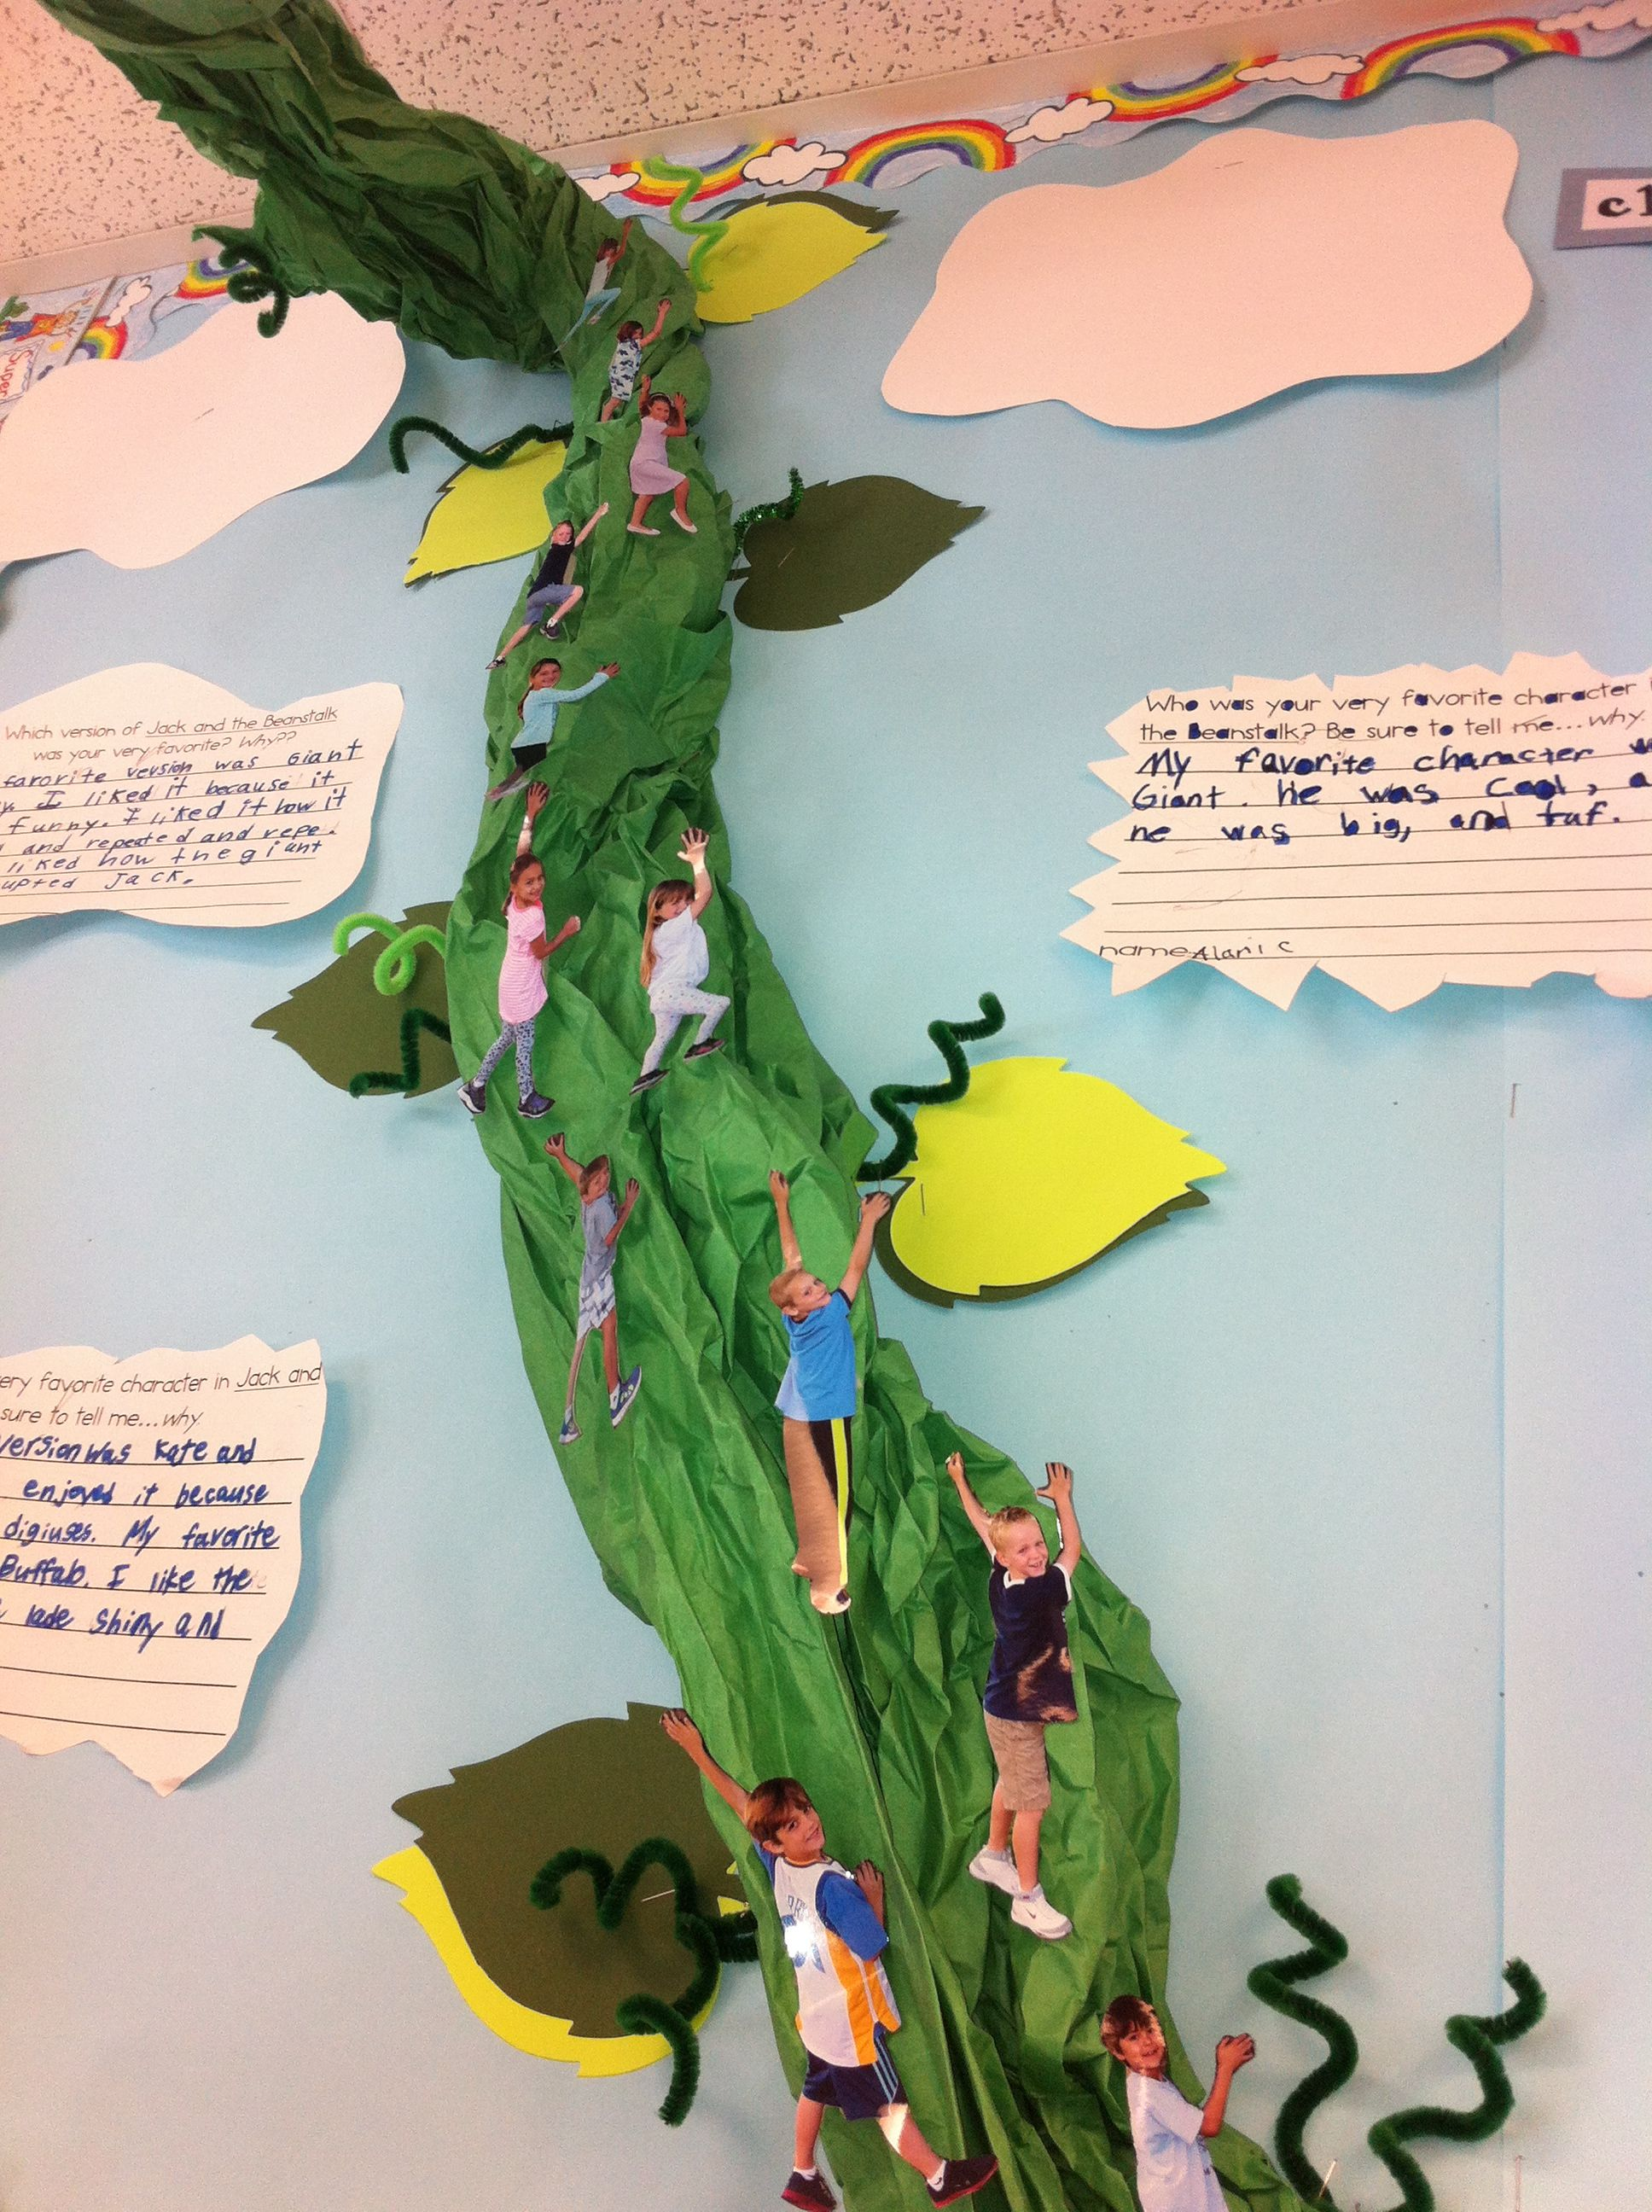 Pics Of Kids Climbing Up Beanstalk Ybe A Jack And The Beanstalk Unit